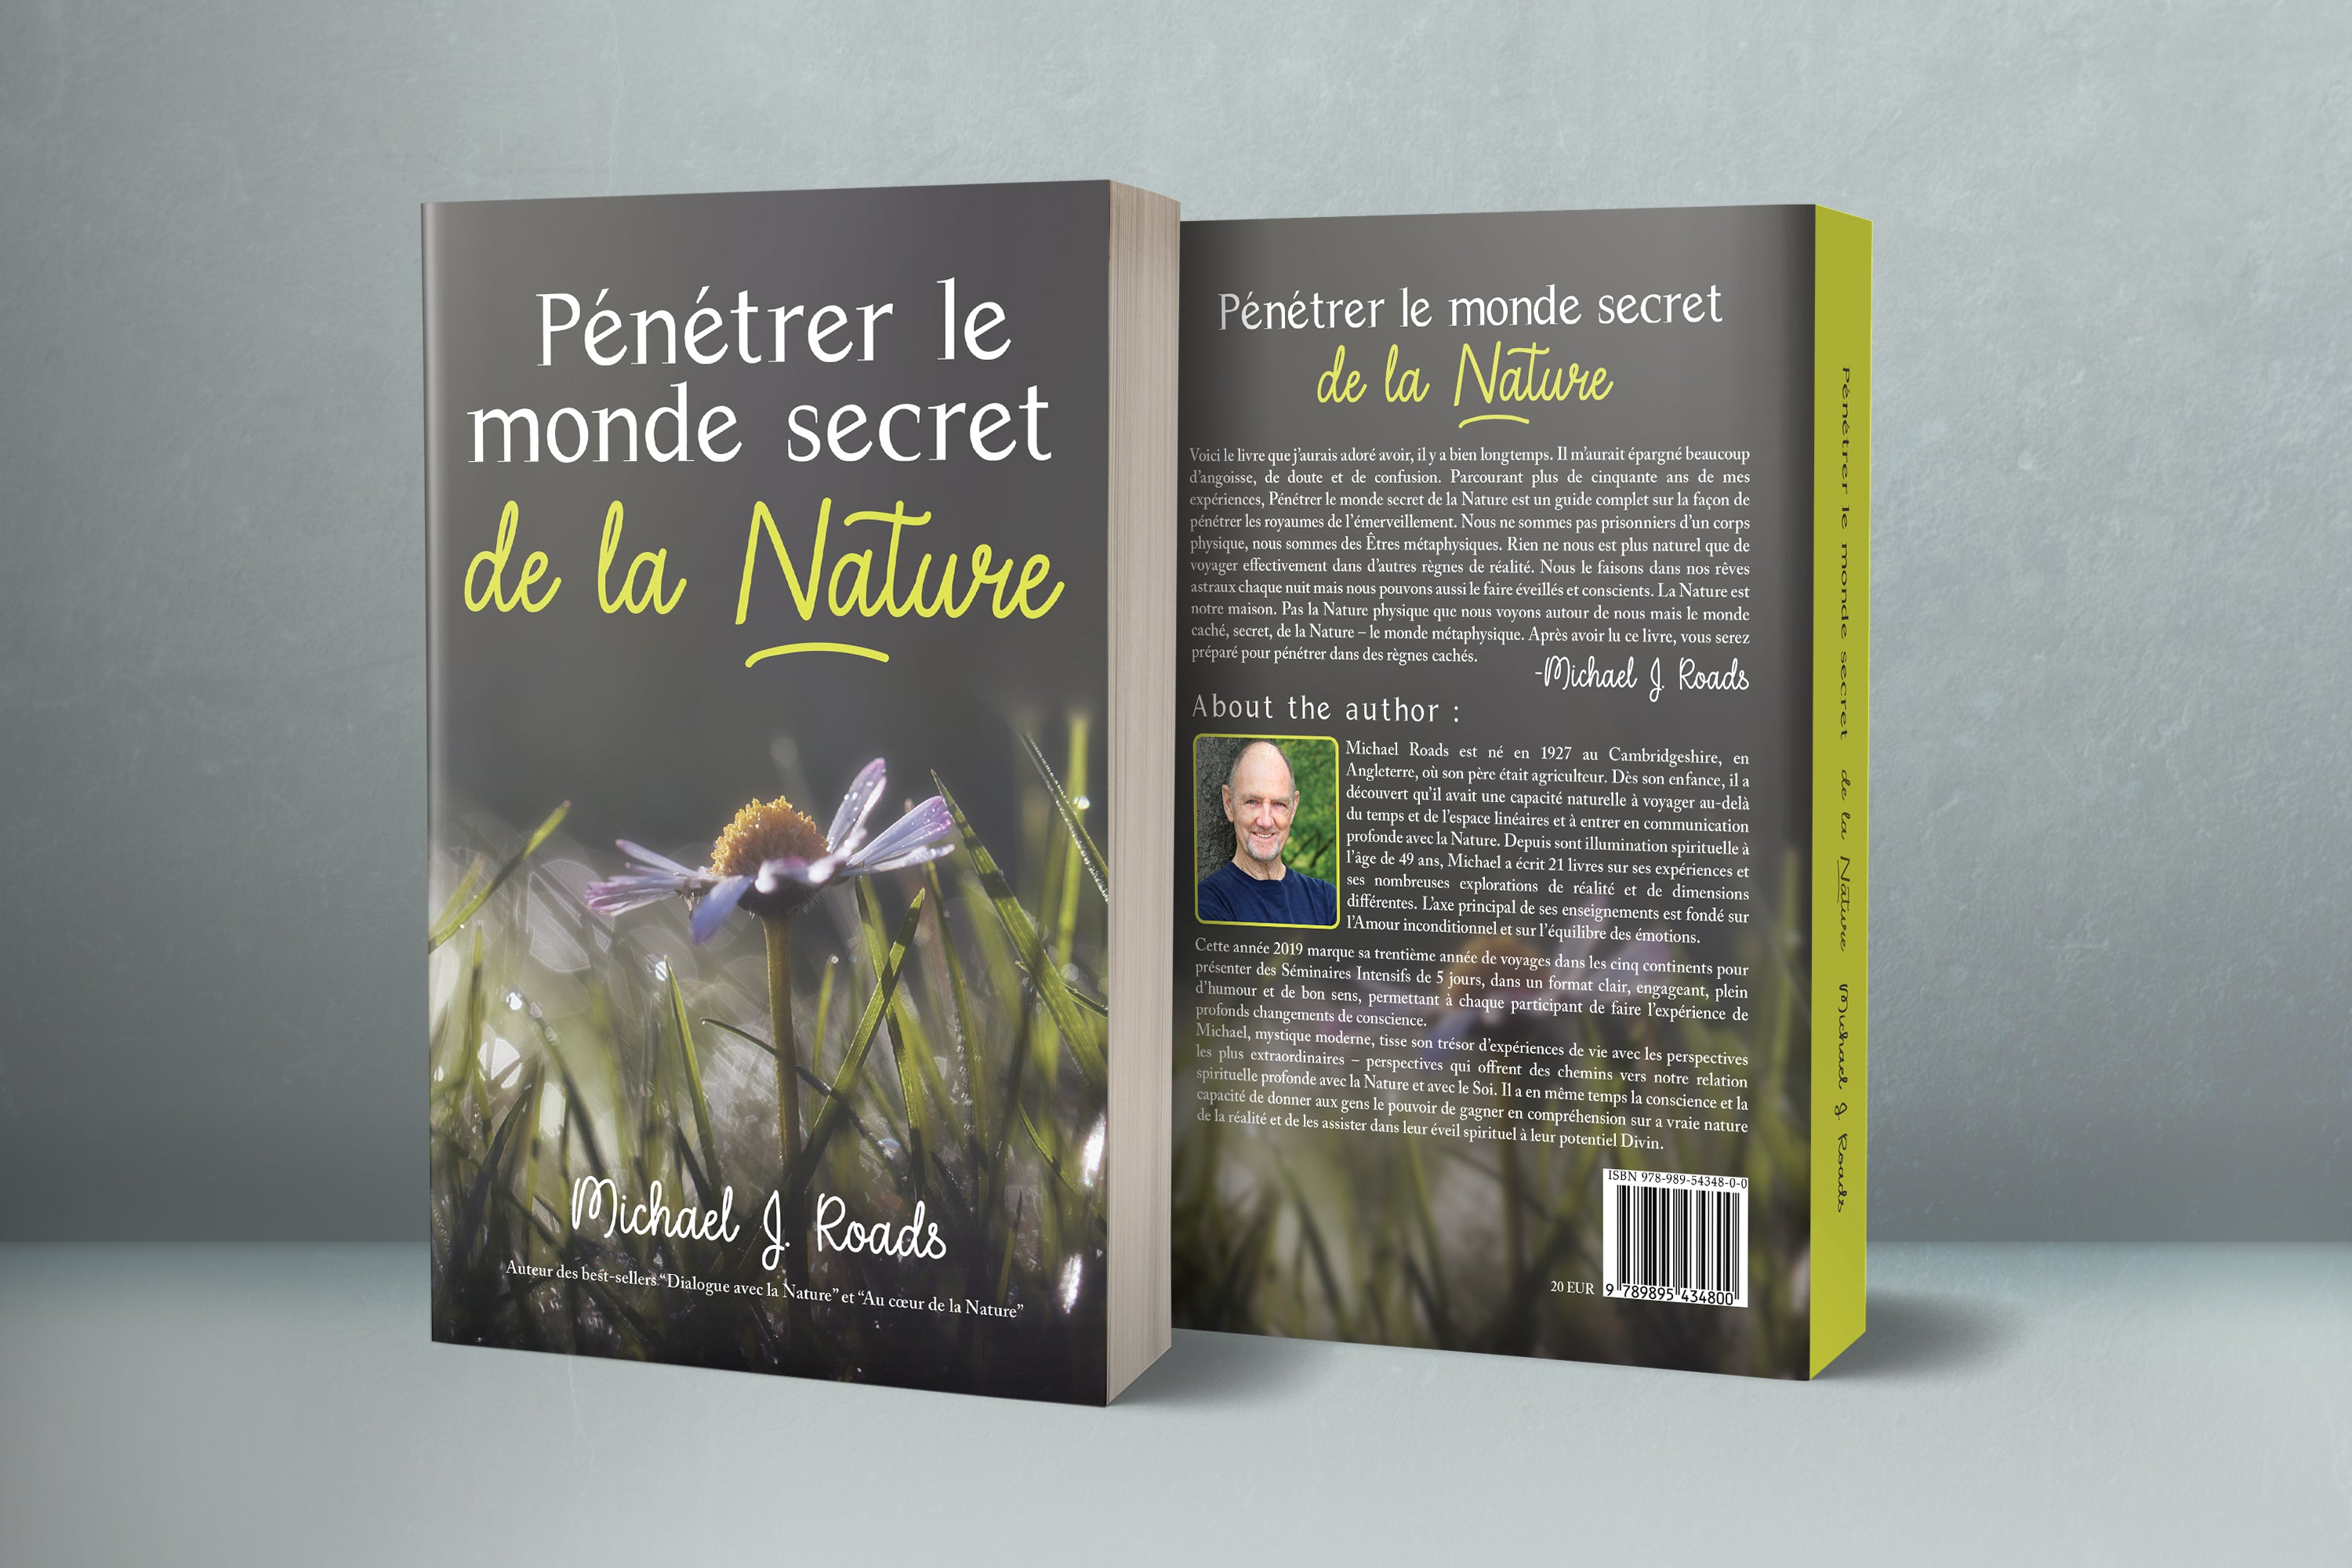 Pénétrer le monde secret de la Nature